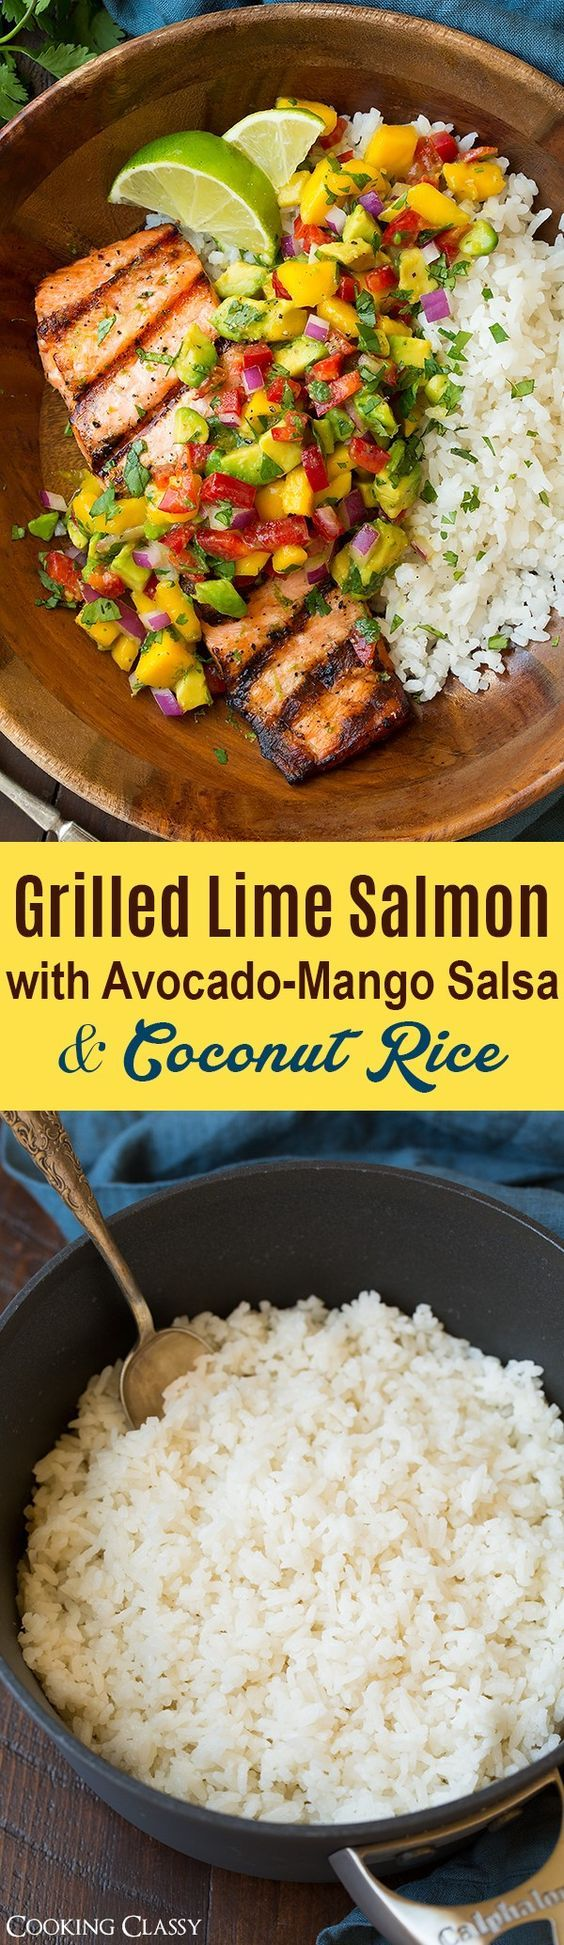 Grilled Lime Salmon with Mango-Avocado Salsa and Coconut Rice - this is the perfect summer meal! Loved everything about this! #pulsepledge